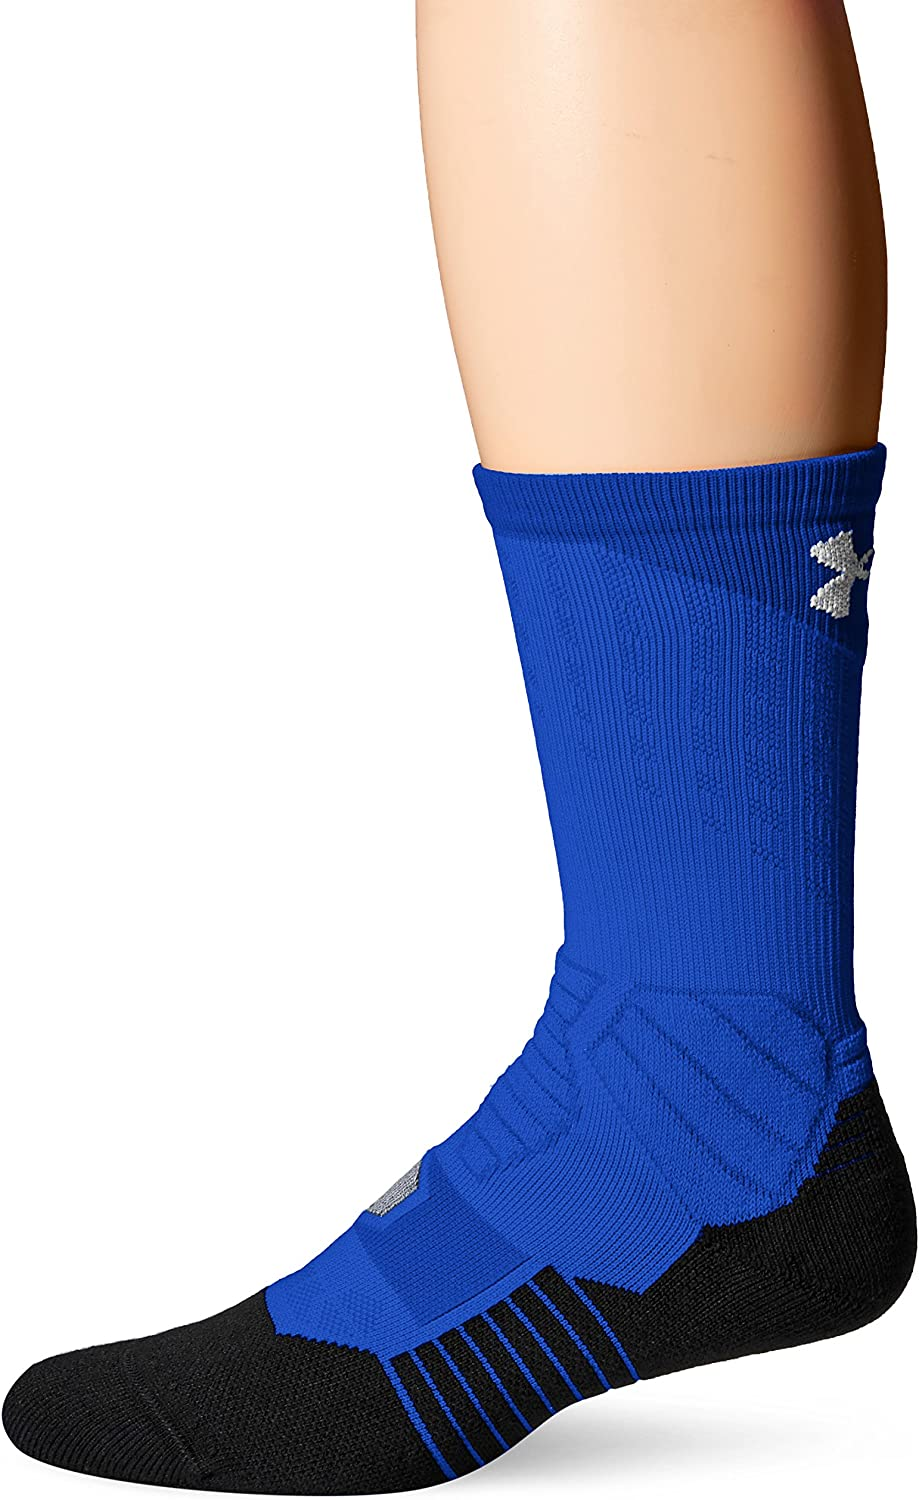 Under Max 59% OFF Armour Adult Drive OFFicial Crew 1-Pair Socks Basketball